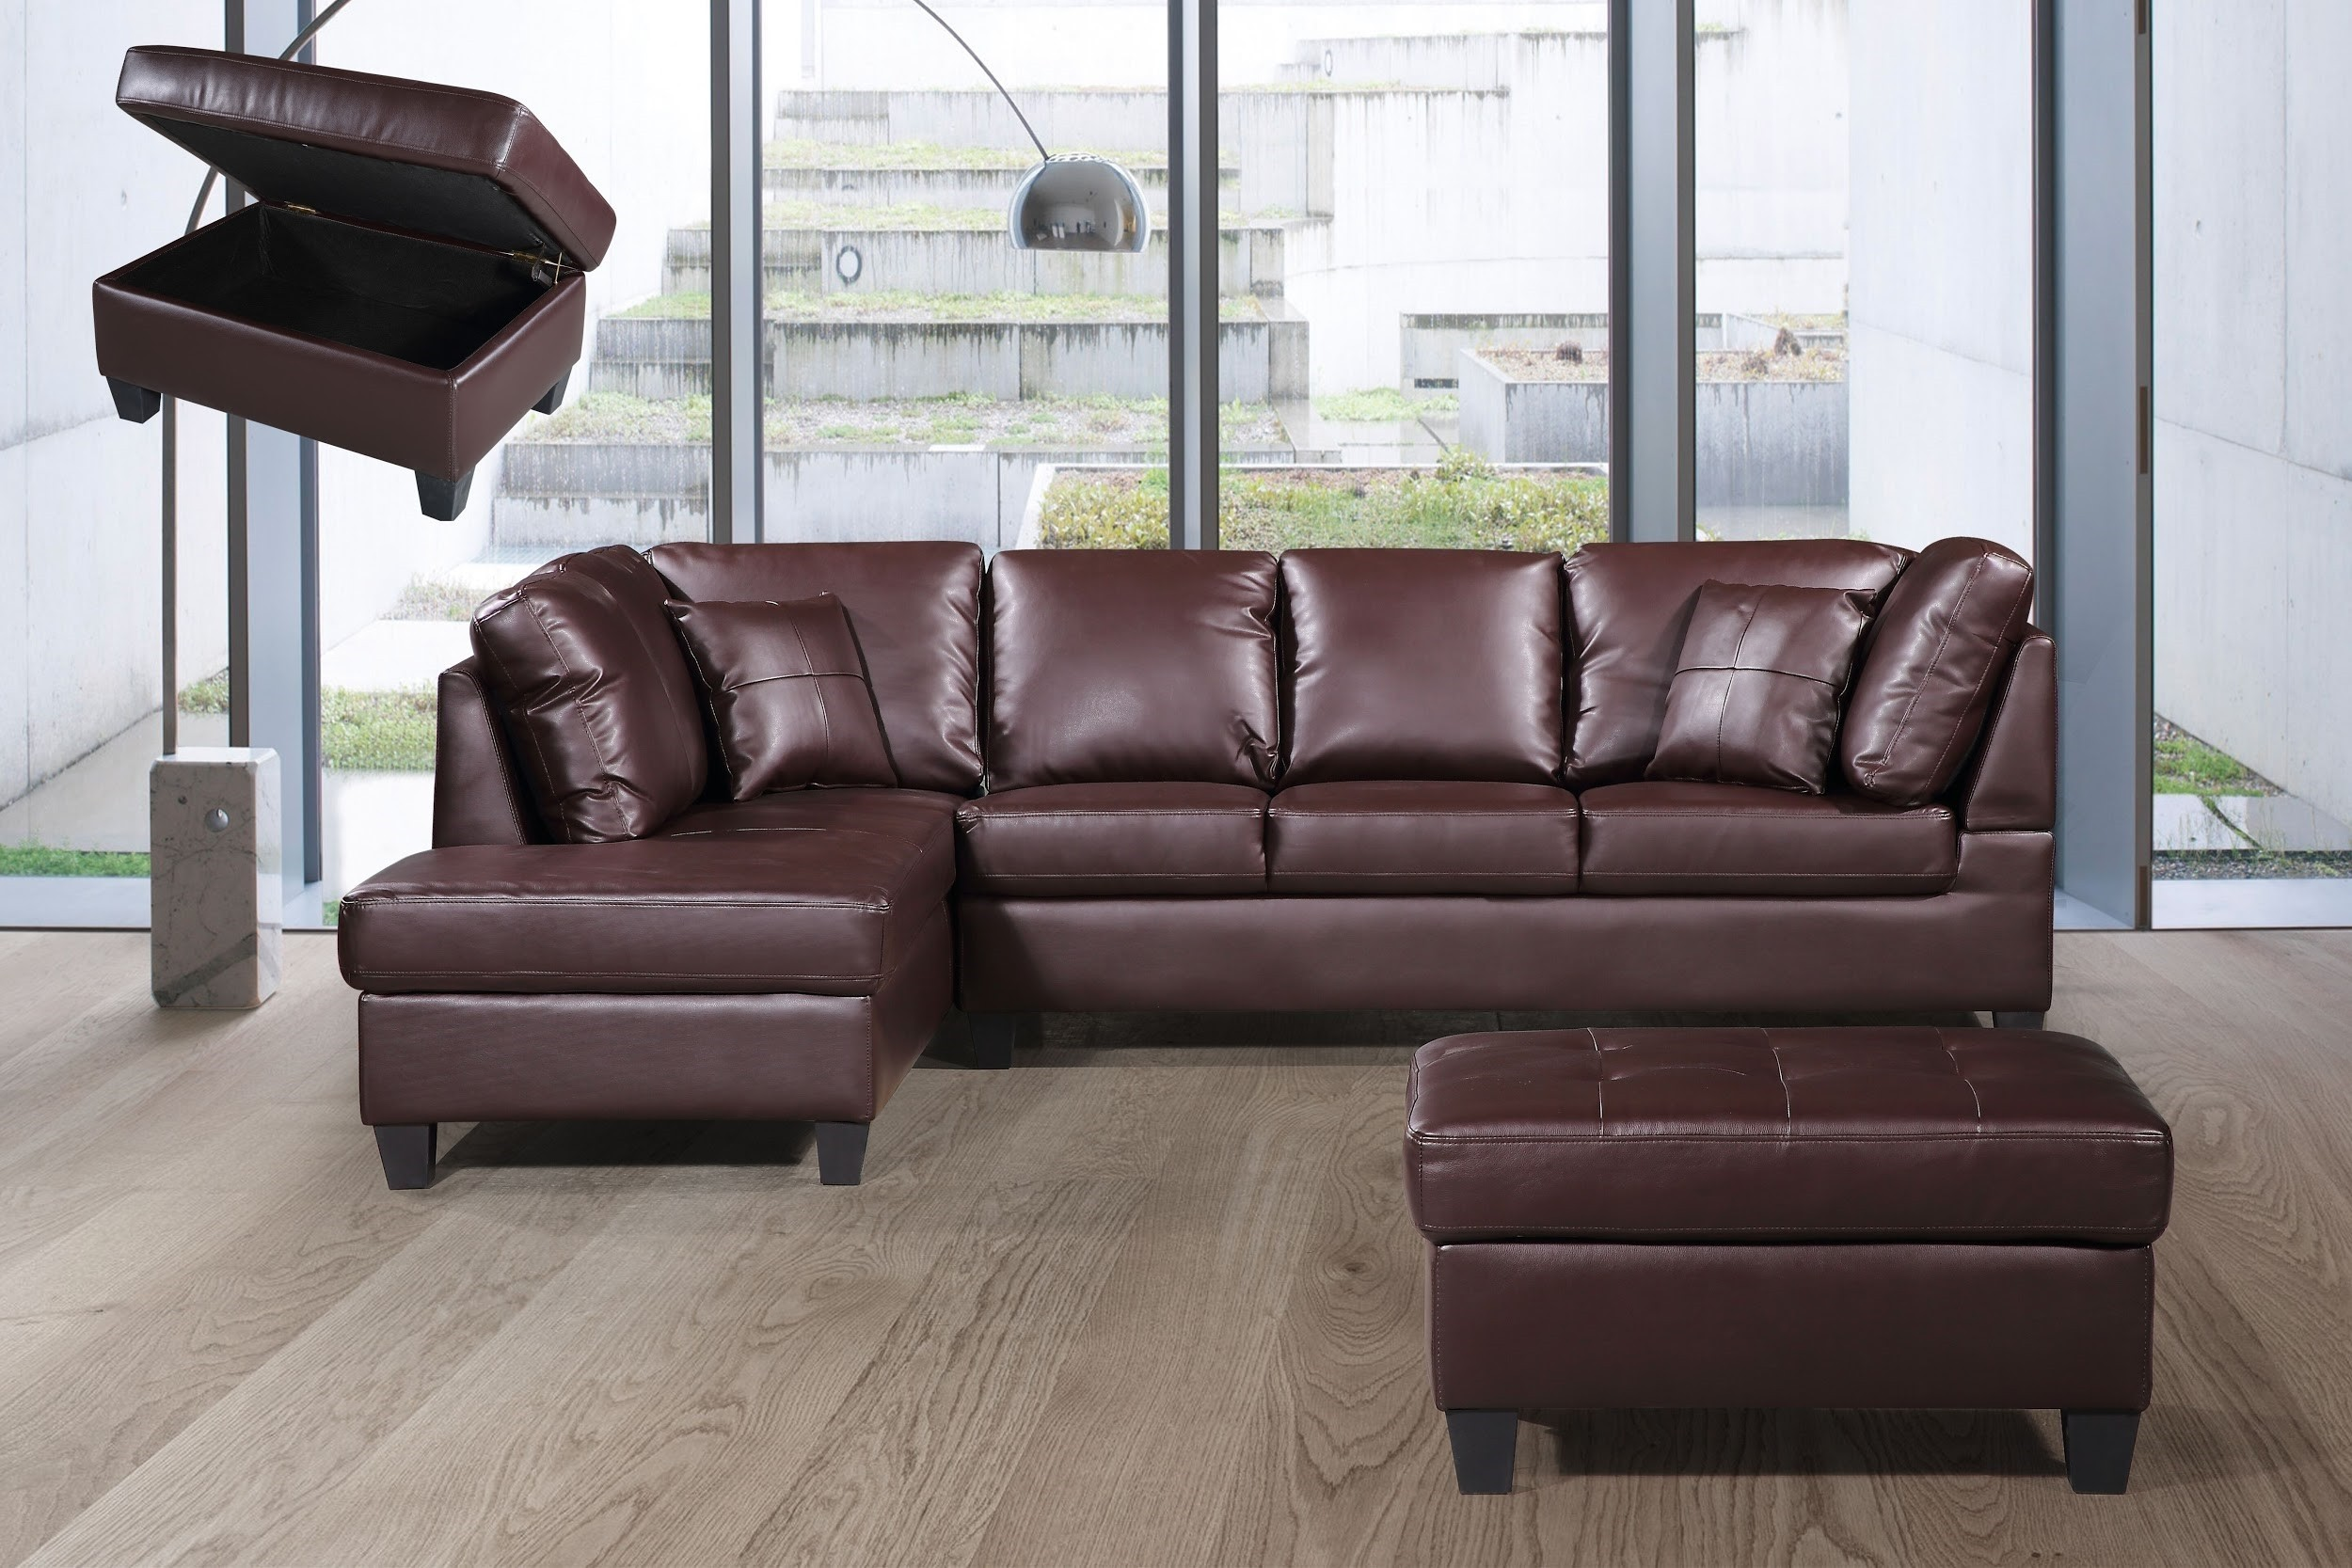 3 Pcs Sectional Sofa Bonded Leather w/Storage Ottoman Brown color Facing Left.-  UH-1025-BR